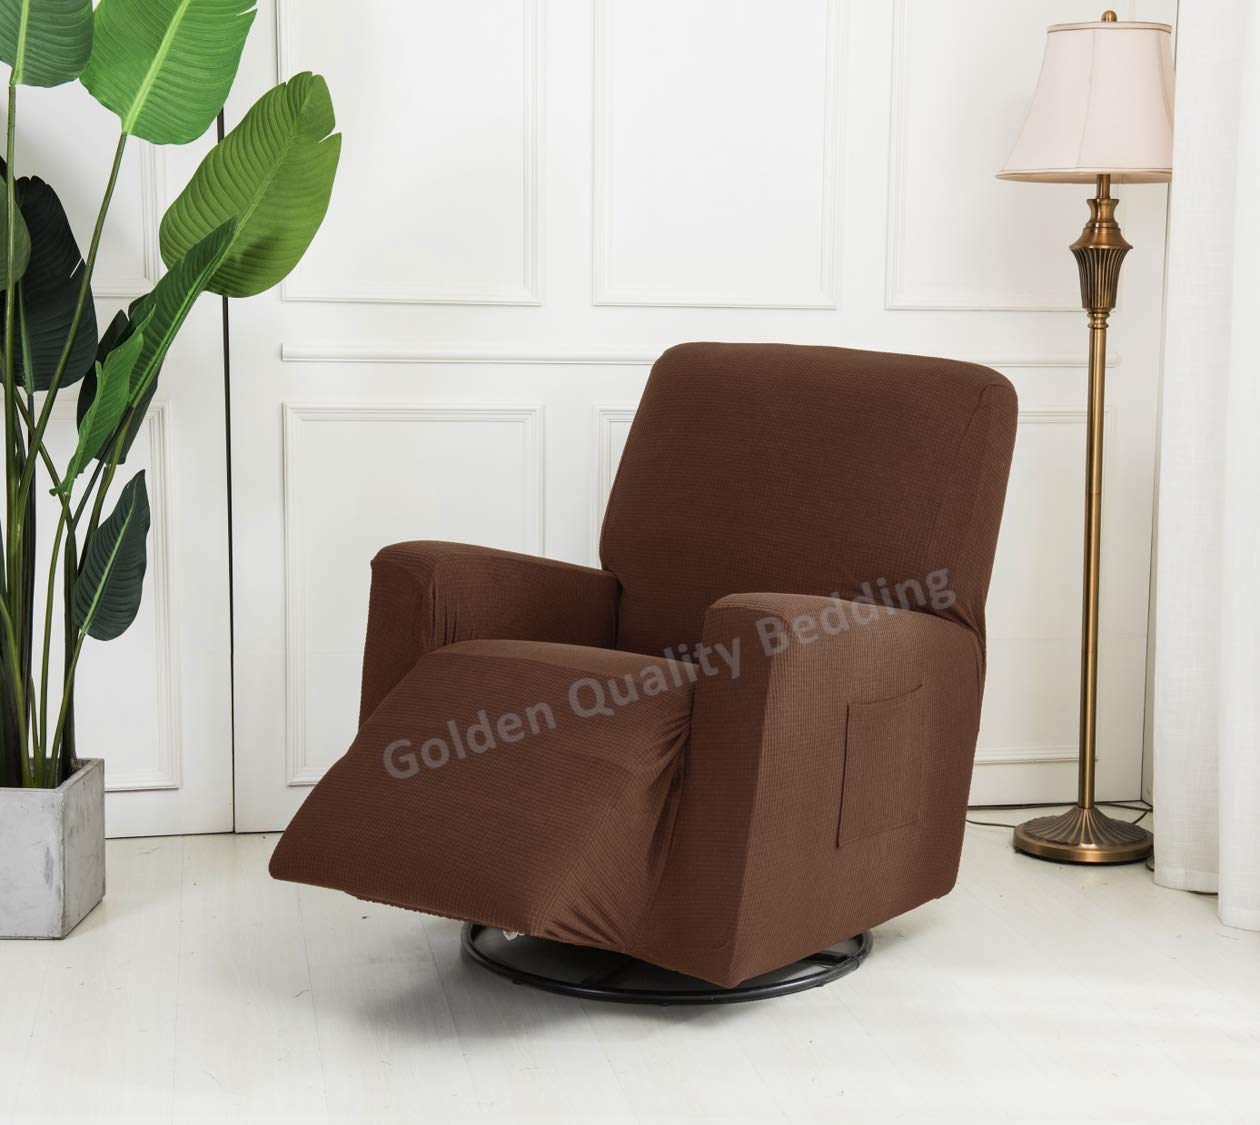 Golden Quality Bedding Stretch Recliner Slipcover One Piece Furniture Protector with Elastic Straps and Pocket Polyester Spandex Supersoft Non-Brushed Fabric Fits Most Recliner Sizes (Black)